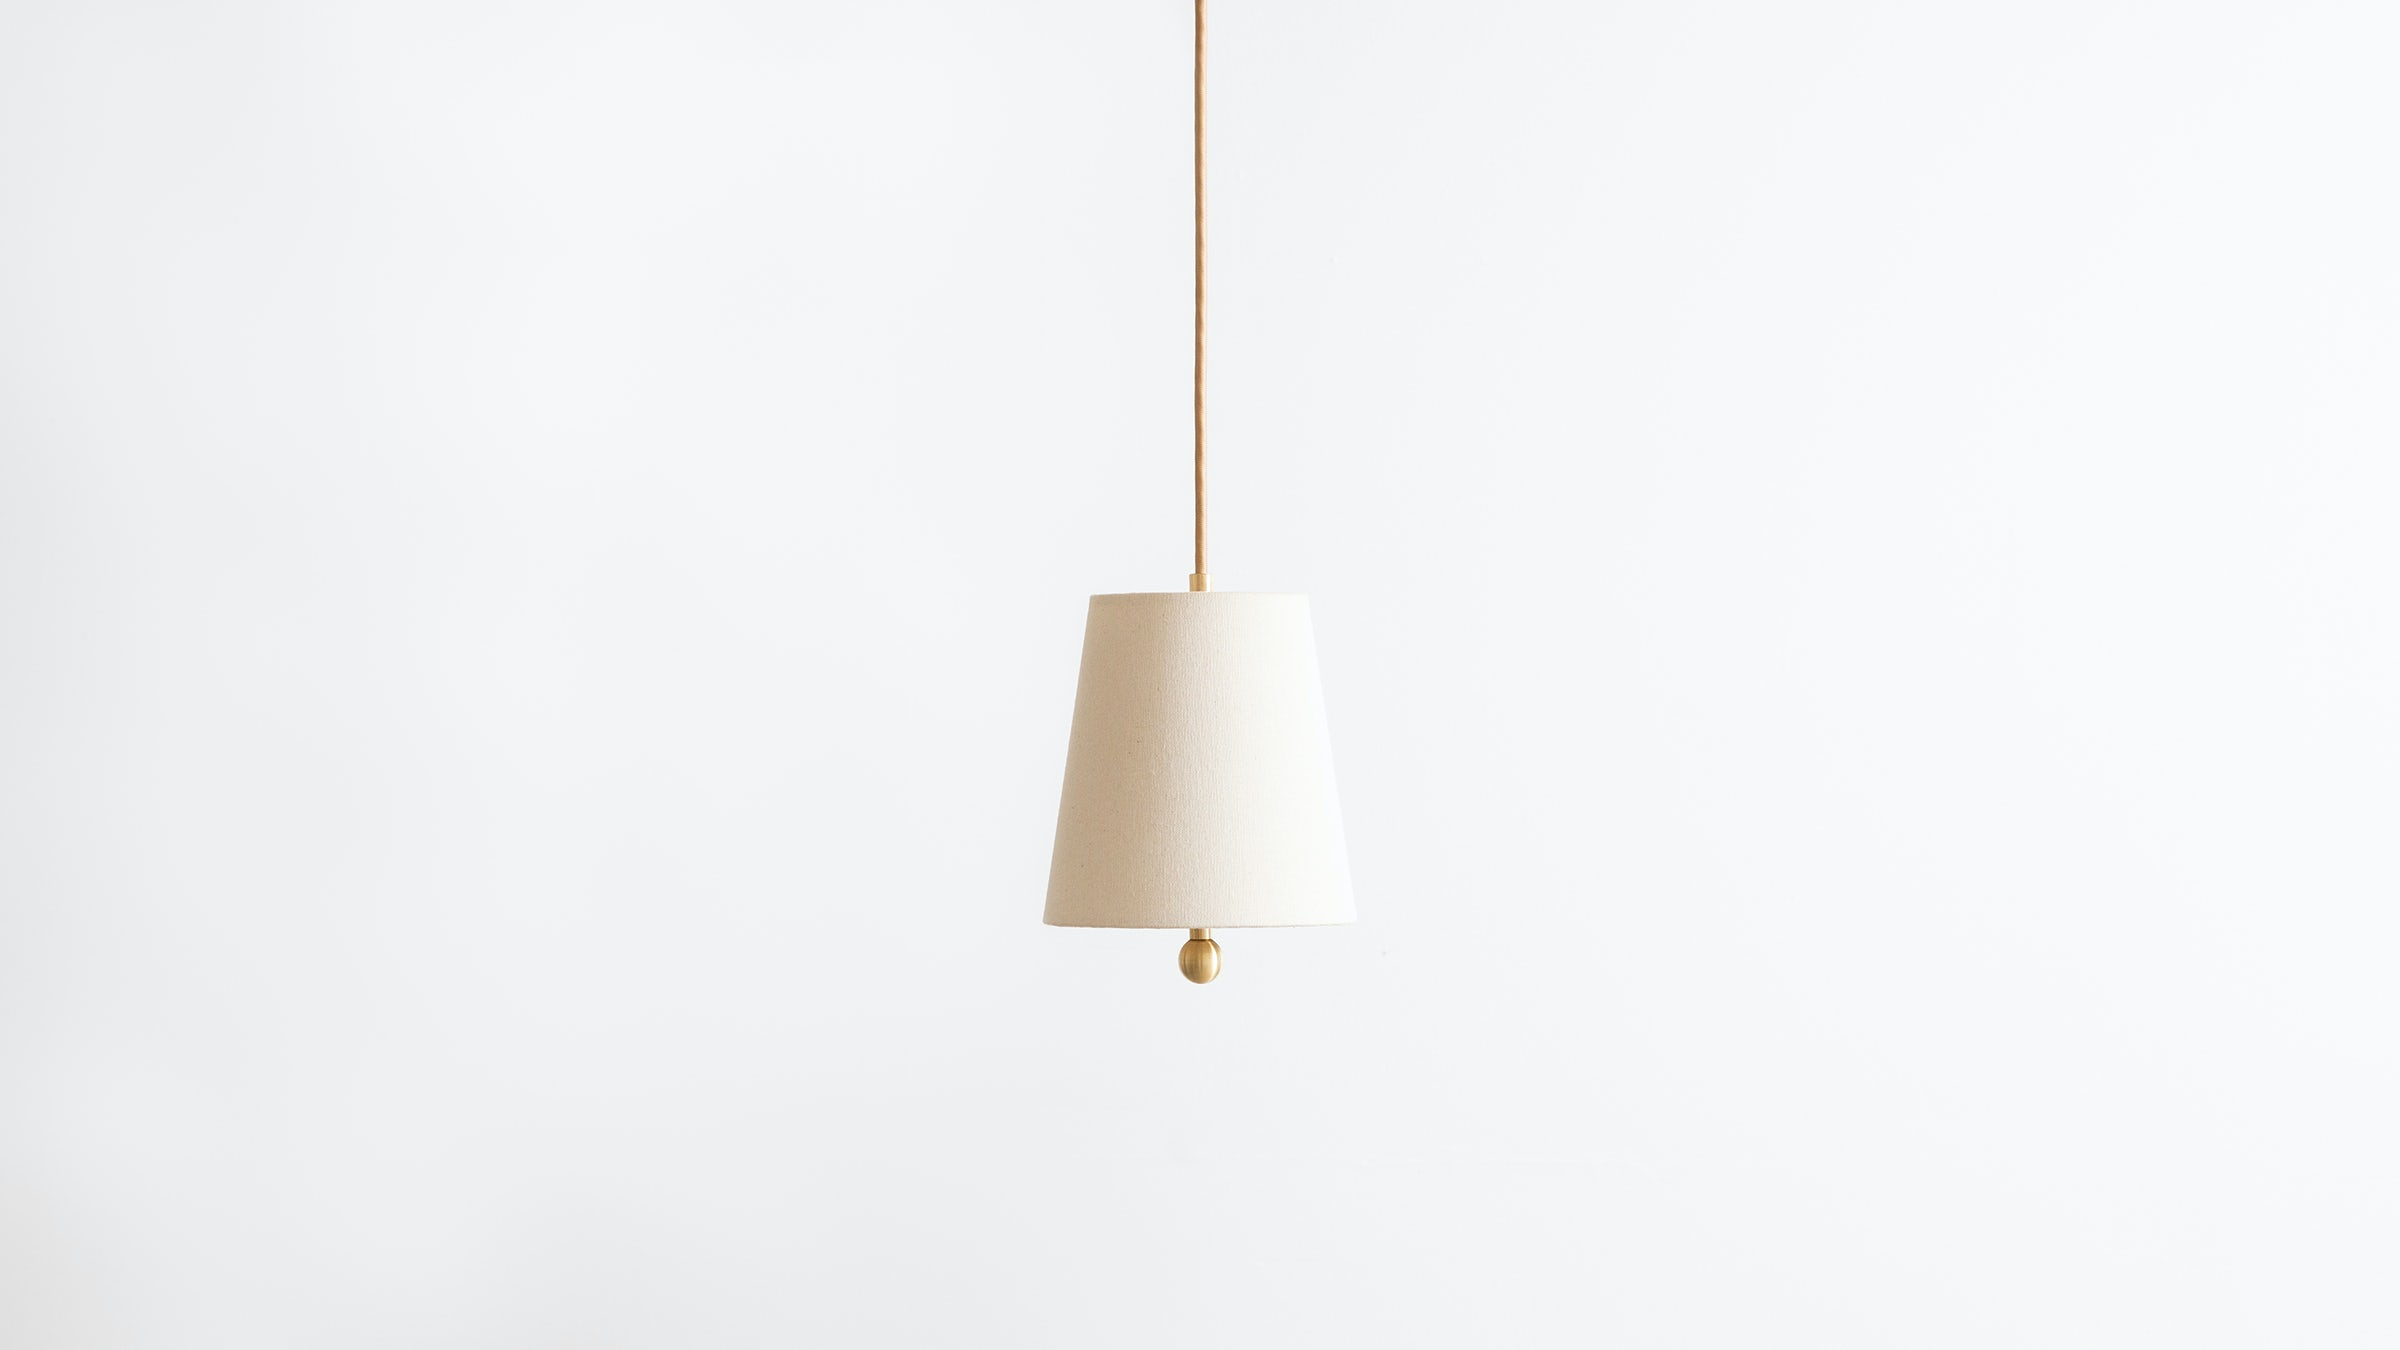 gallery image for House Cord Pendant Small